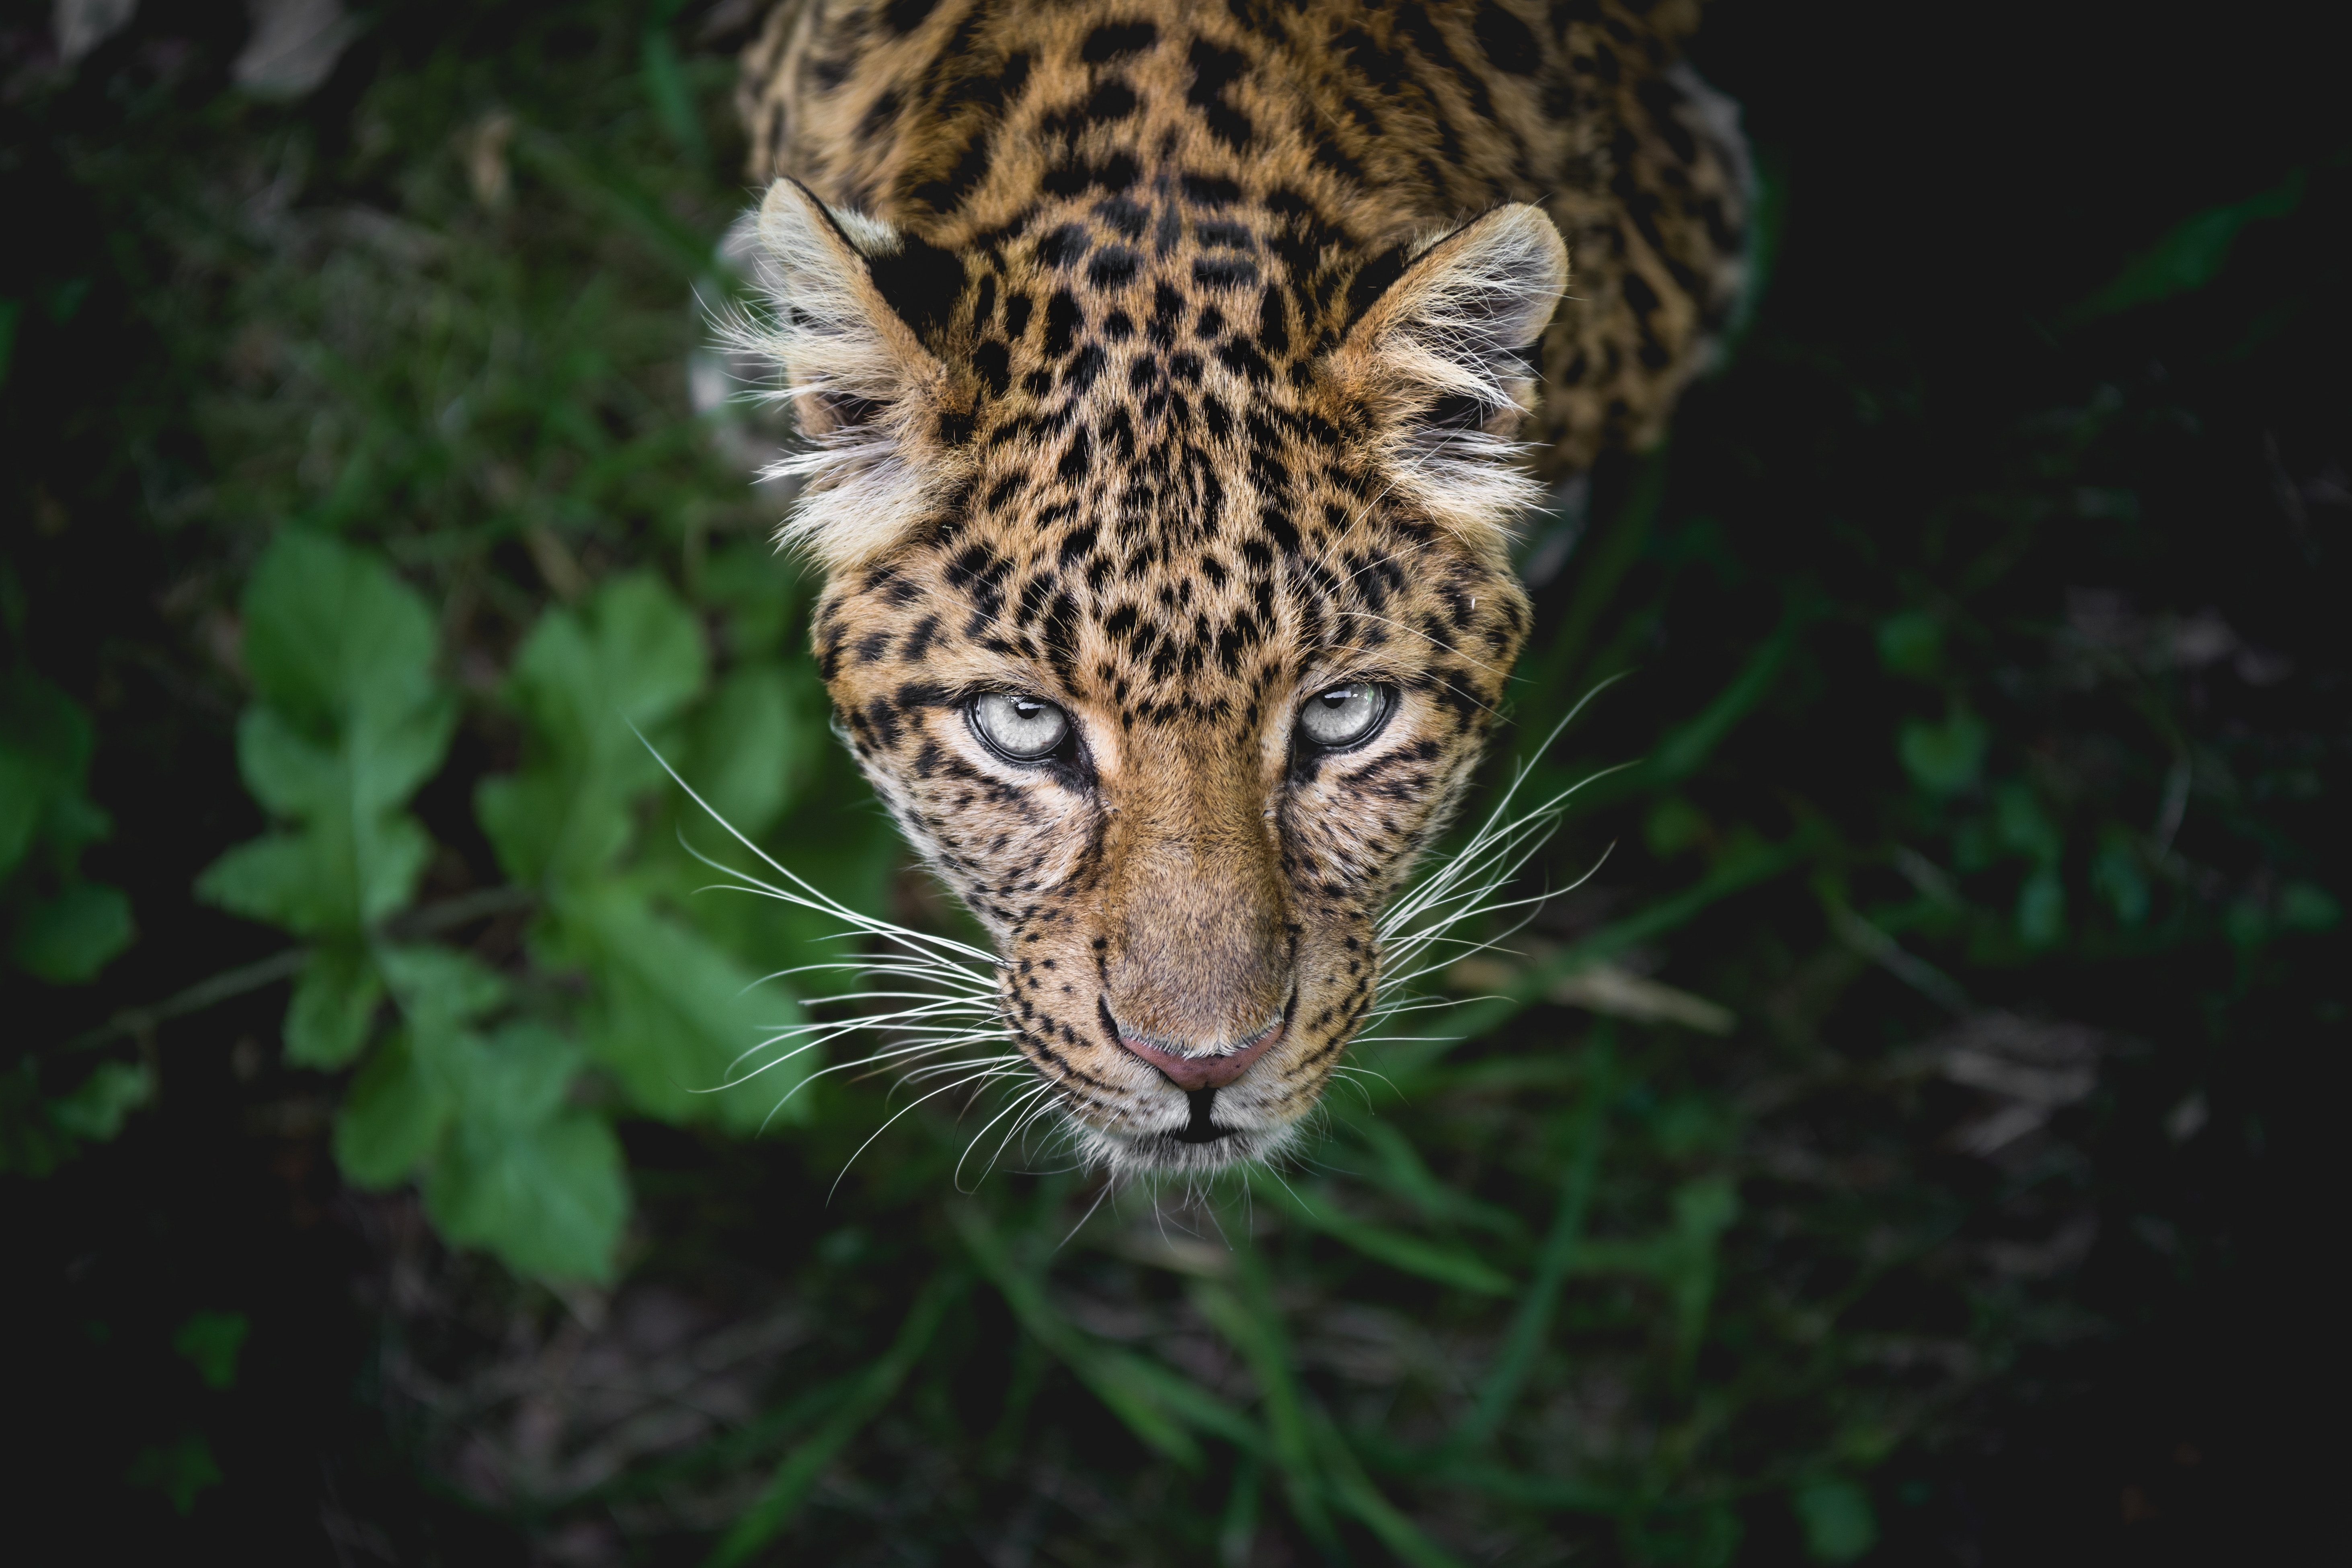 69273 download wallpaper Animals, Leopard, Muzzle, Predator, Big Cat, Sight, Opinion, Peek Out, Look Out screensavers and pictures for free